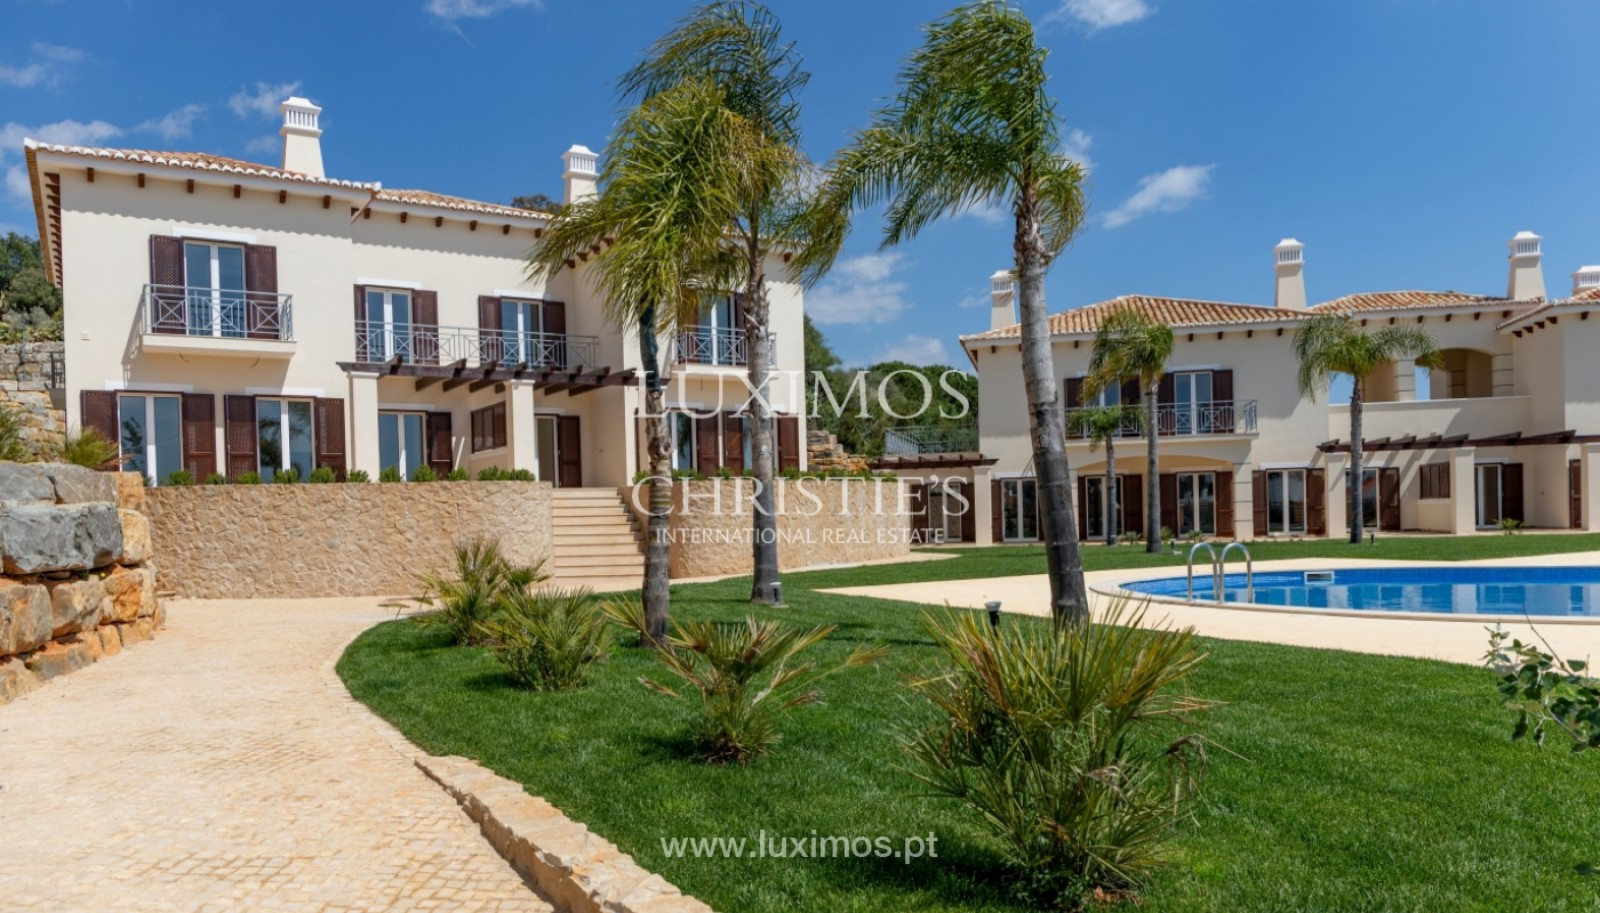 3-bedroom-villa-for-sale-in-closed-condominium-in-albufeira-algarve